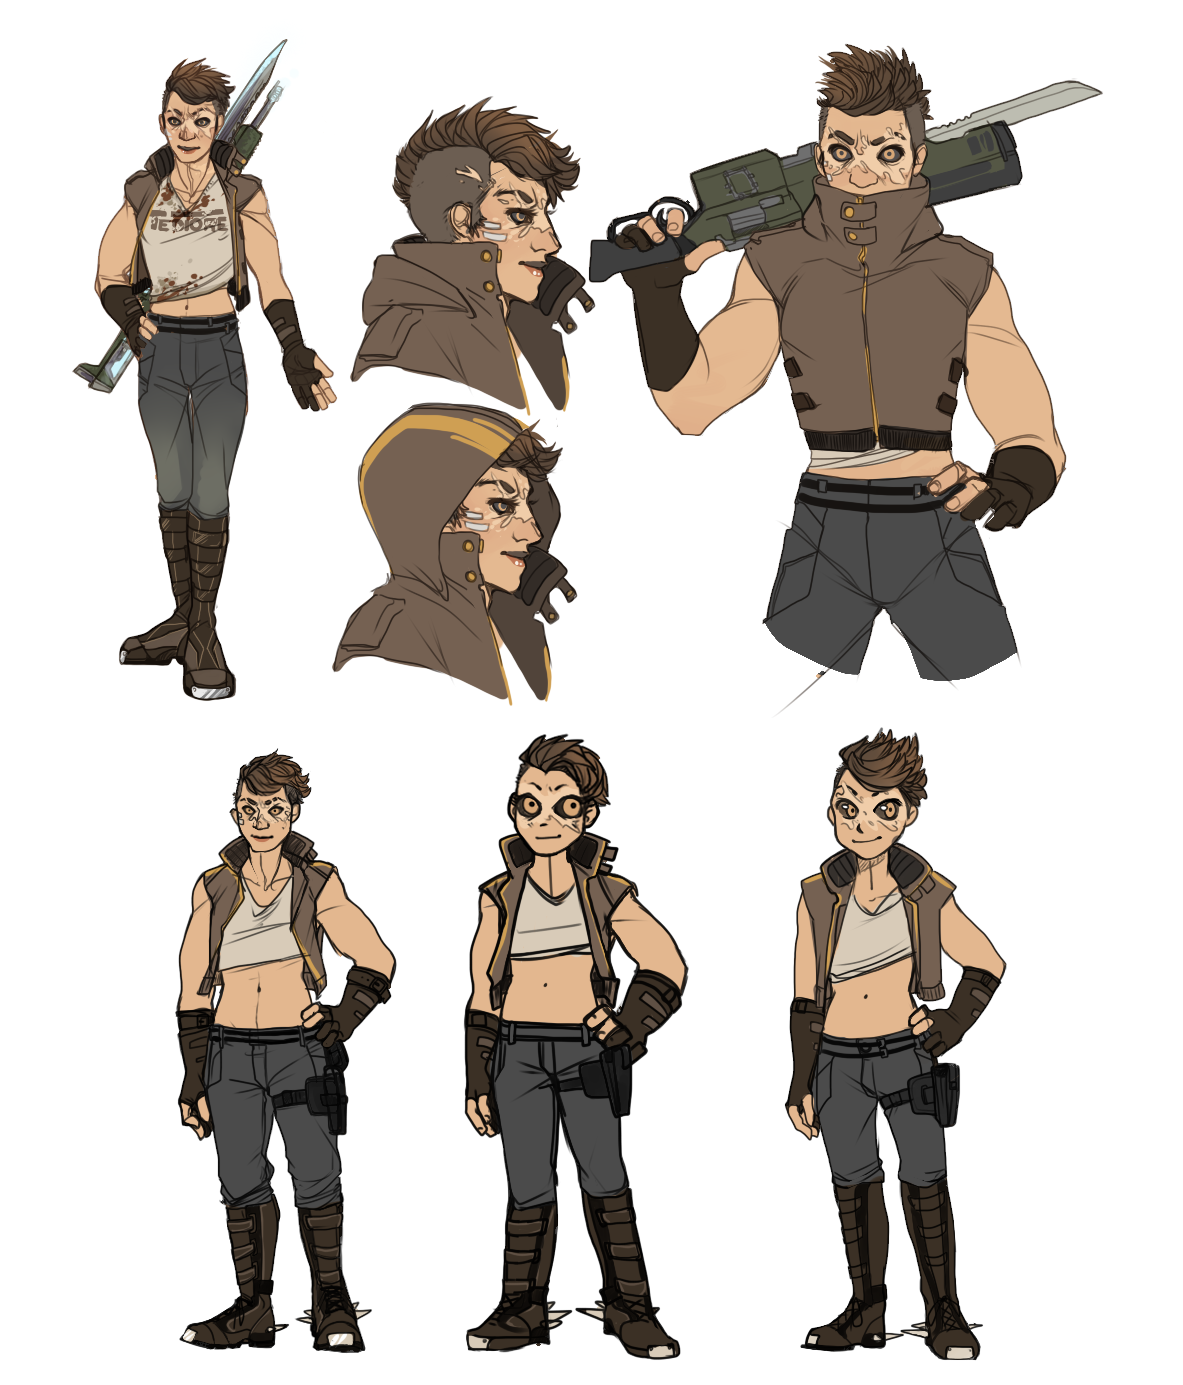 Feb + Oct 2015 - PaintTool Sai  Concept/Reference art for a personal character + representation of her design in different styles